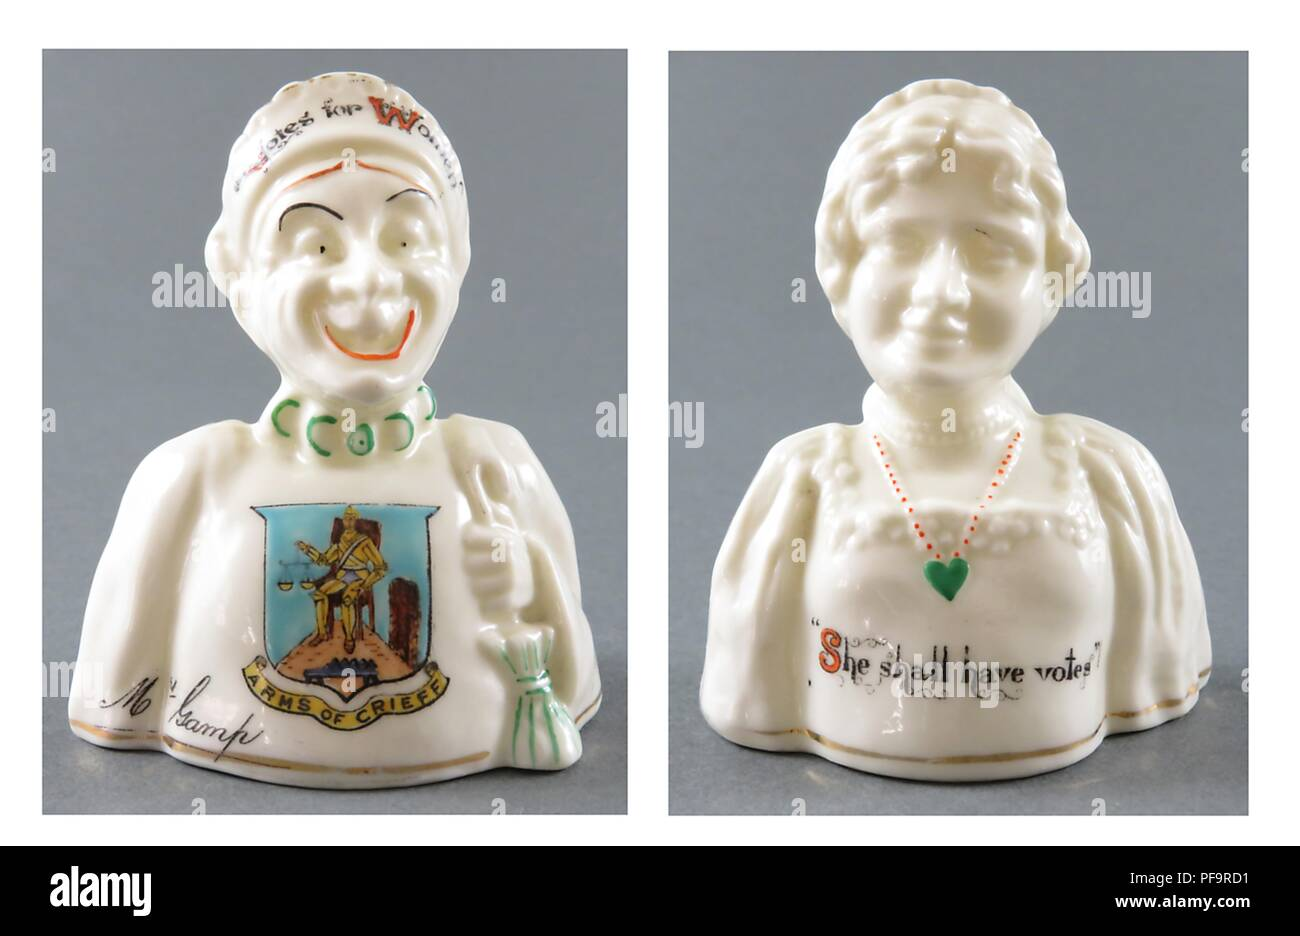 Two-sided china figurine, featuring an image of a female suffragist as both harridan and lovely woman, sold as souvenirs in vacation spots in England, United Kingdom, with merchants from each area adding the crest of their town (such as Crieff's here) to the piece, 1920. () - Stock Image